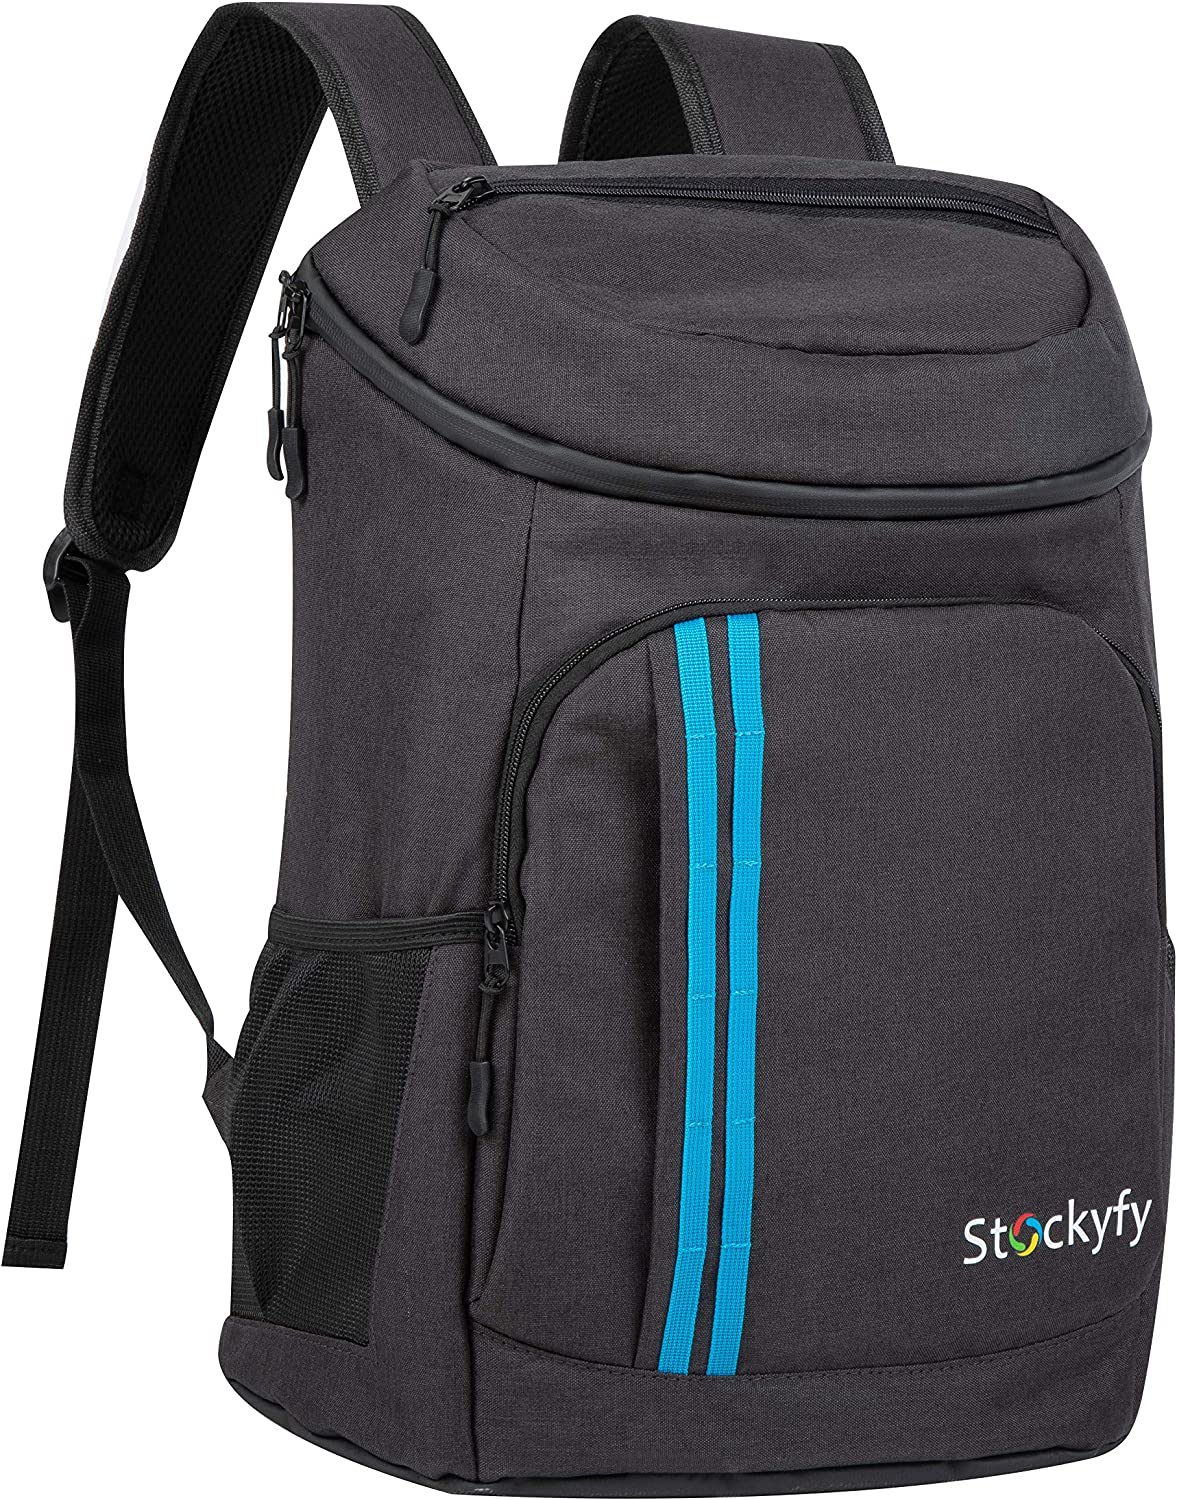 STOCKYFY Backpack Cooler Backpack 30 Cans Lightweight Insulated Backpack Cooler Leak-Proof Soft Cooler Bag Large Capacity for Men Women to Picnics, Camping, Hiking, Beach, Park or Day Trips